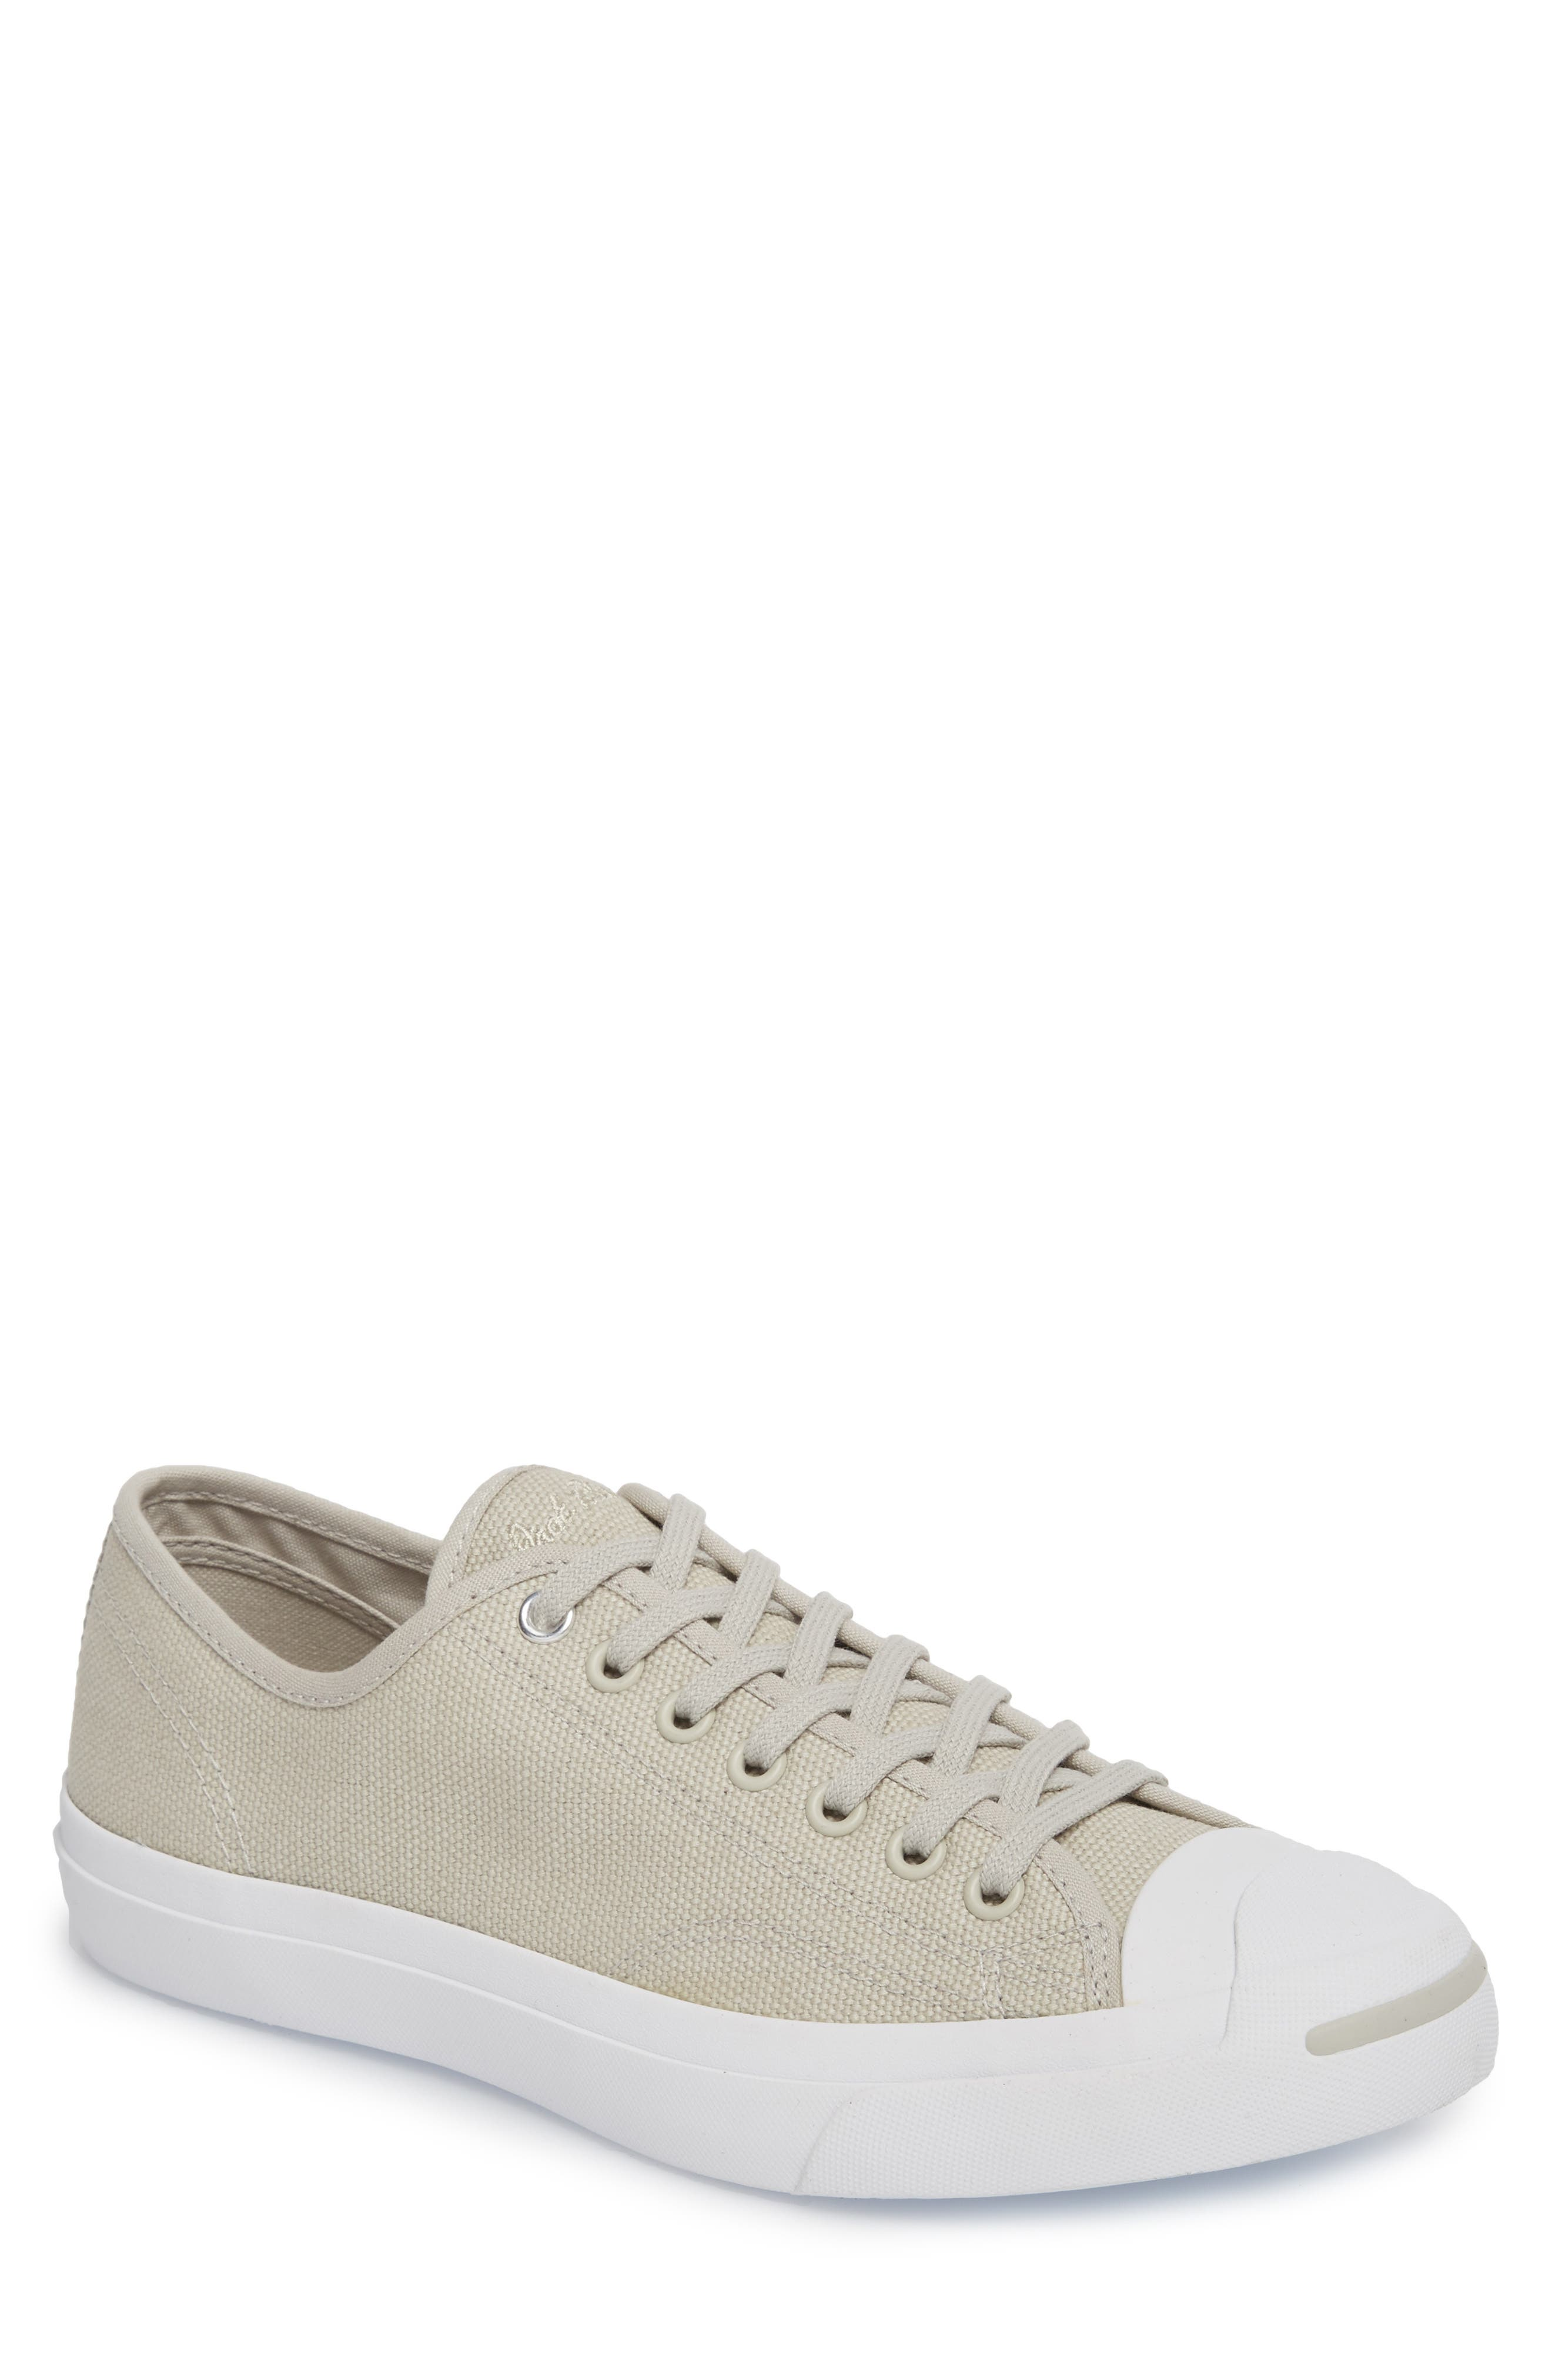 Jack Purcell Sneaker,                             Main thumbnail 1, color,                             Pale Grey Canvas